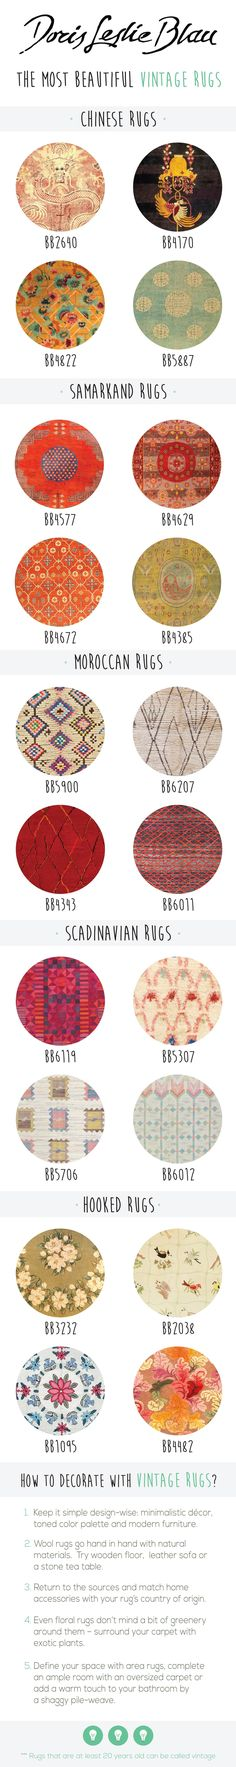 Vintage Rugs: Moroccan rug, Scandinavian rug, Chinese rug, oriental rug. interior decor in the vintage eclectic (Scandinavian, Moroccan) living room :)